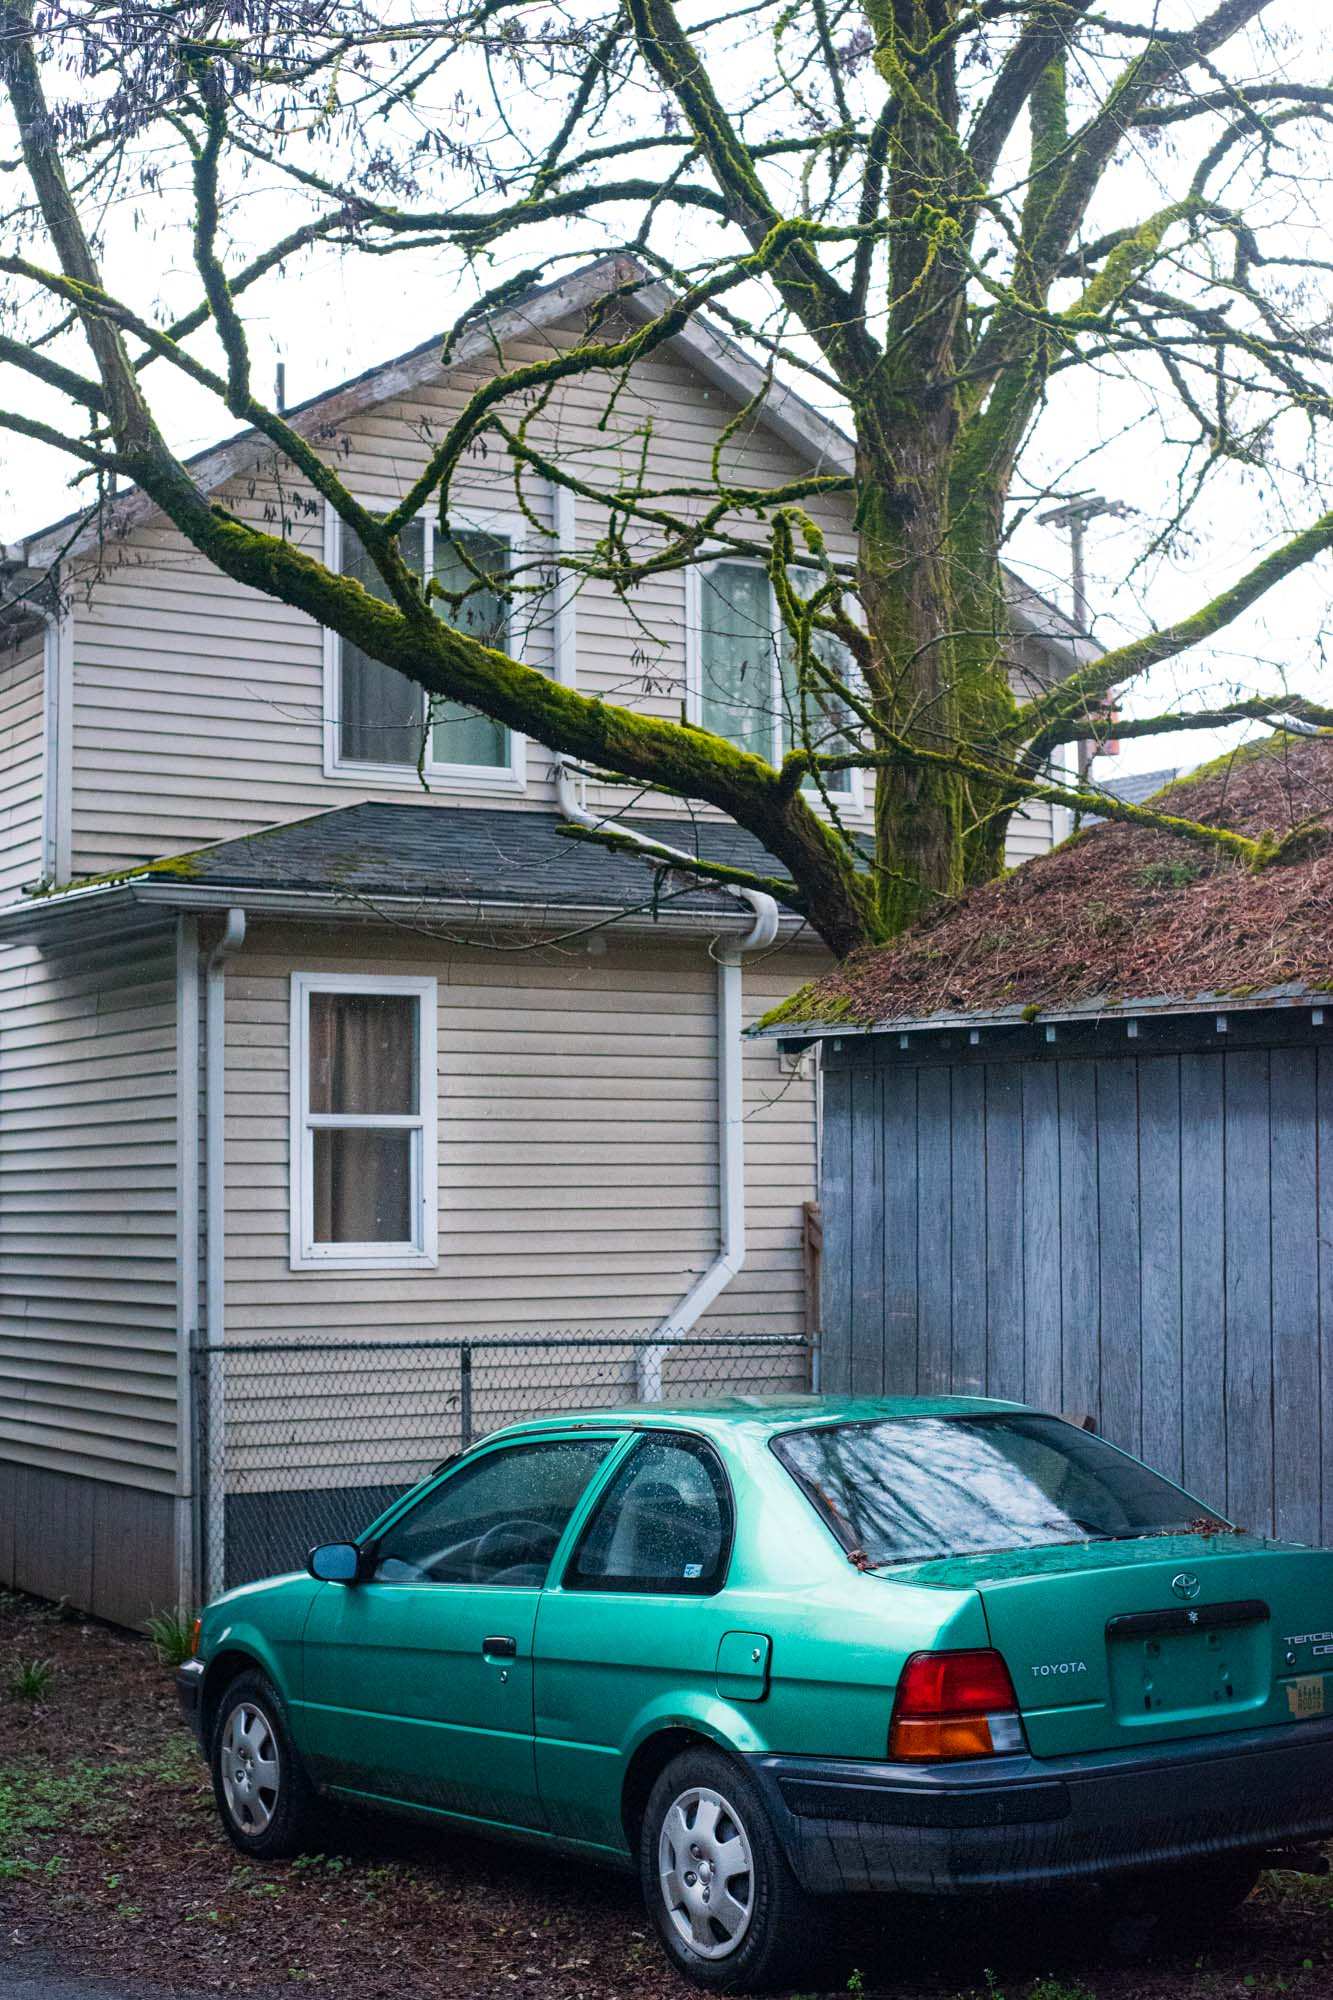 a green car parked behind a house on a crisp fall day in Portland, Oregon